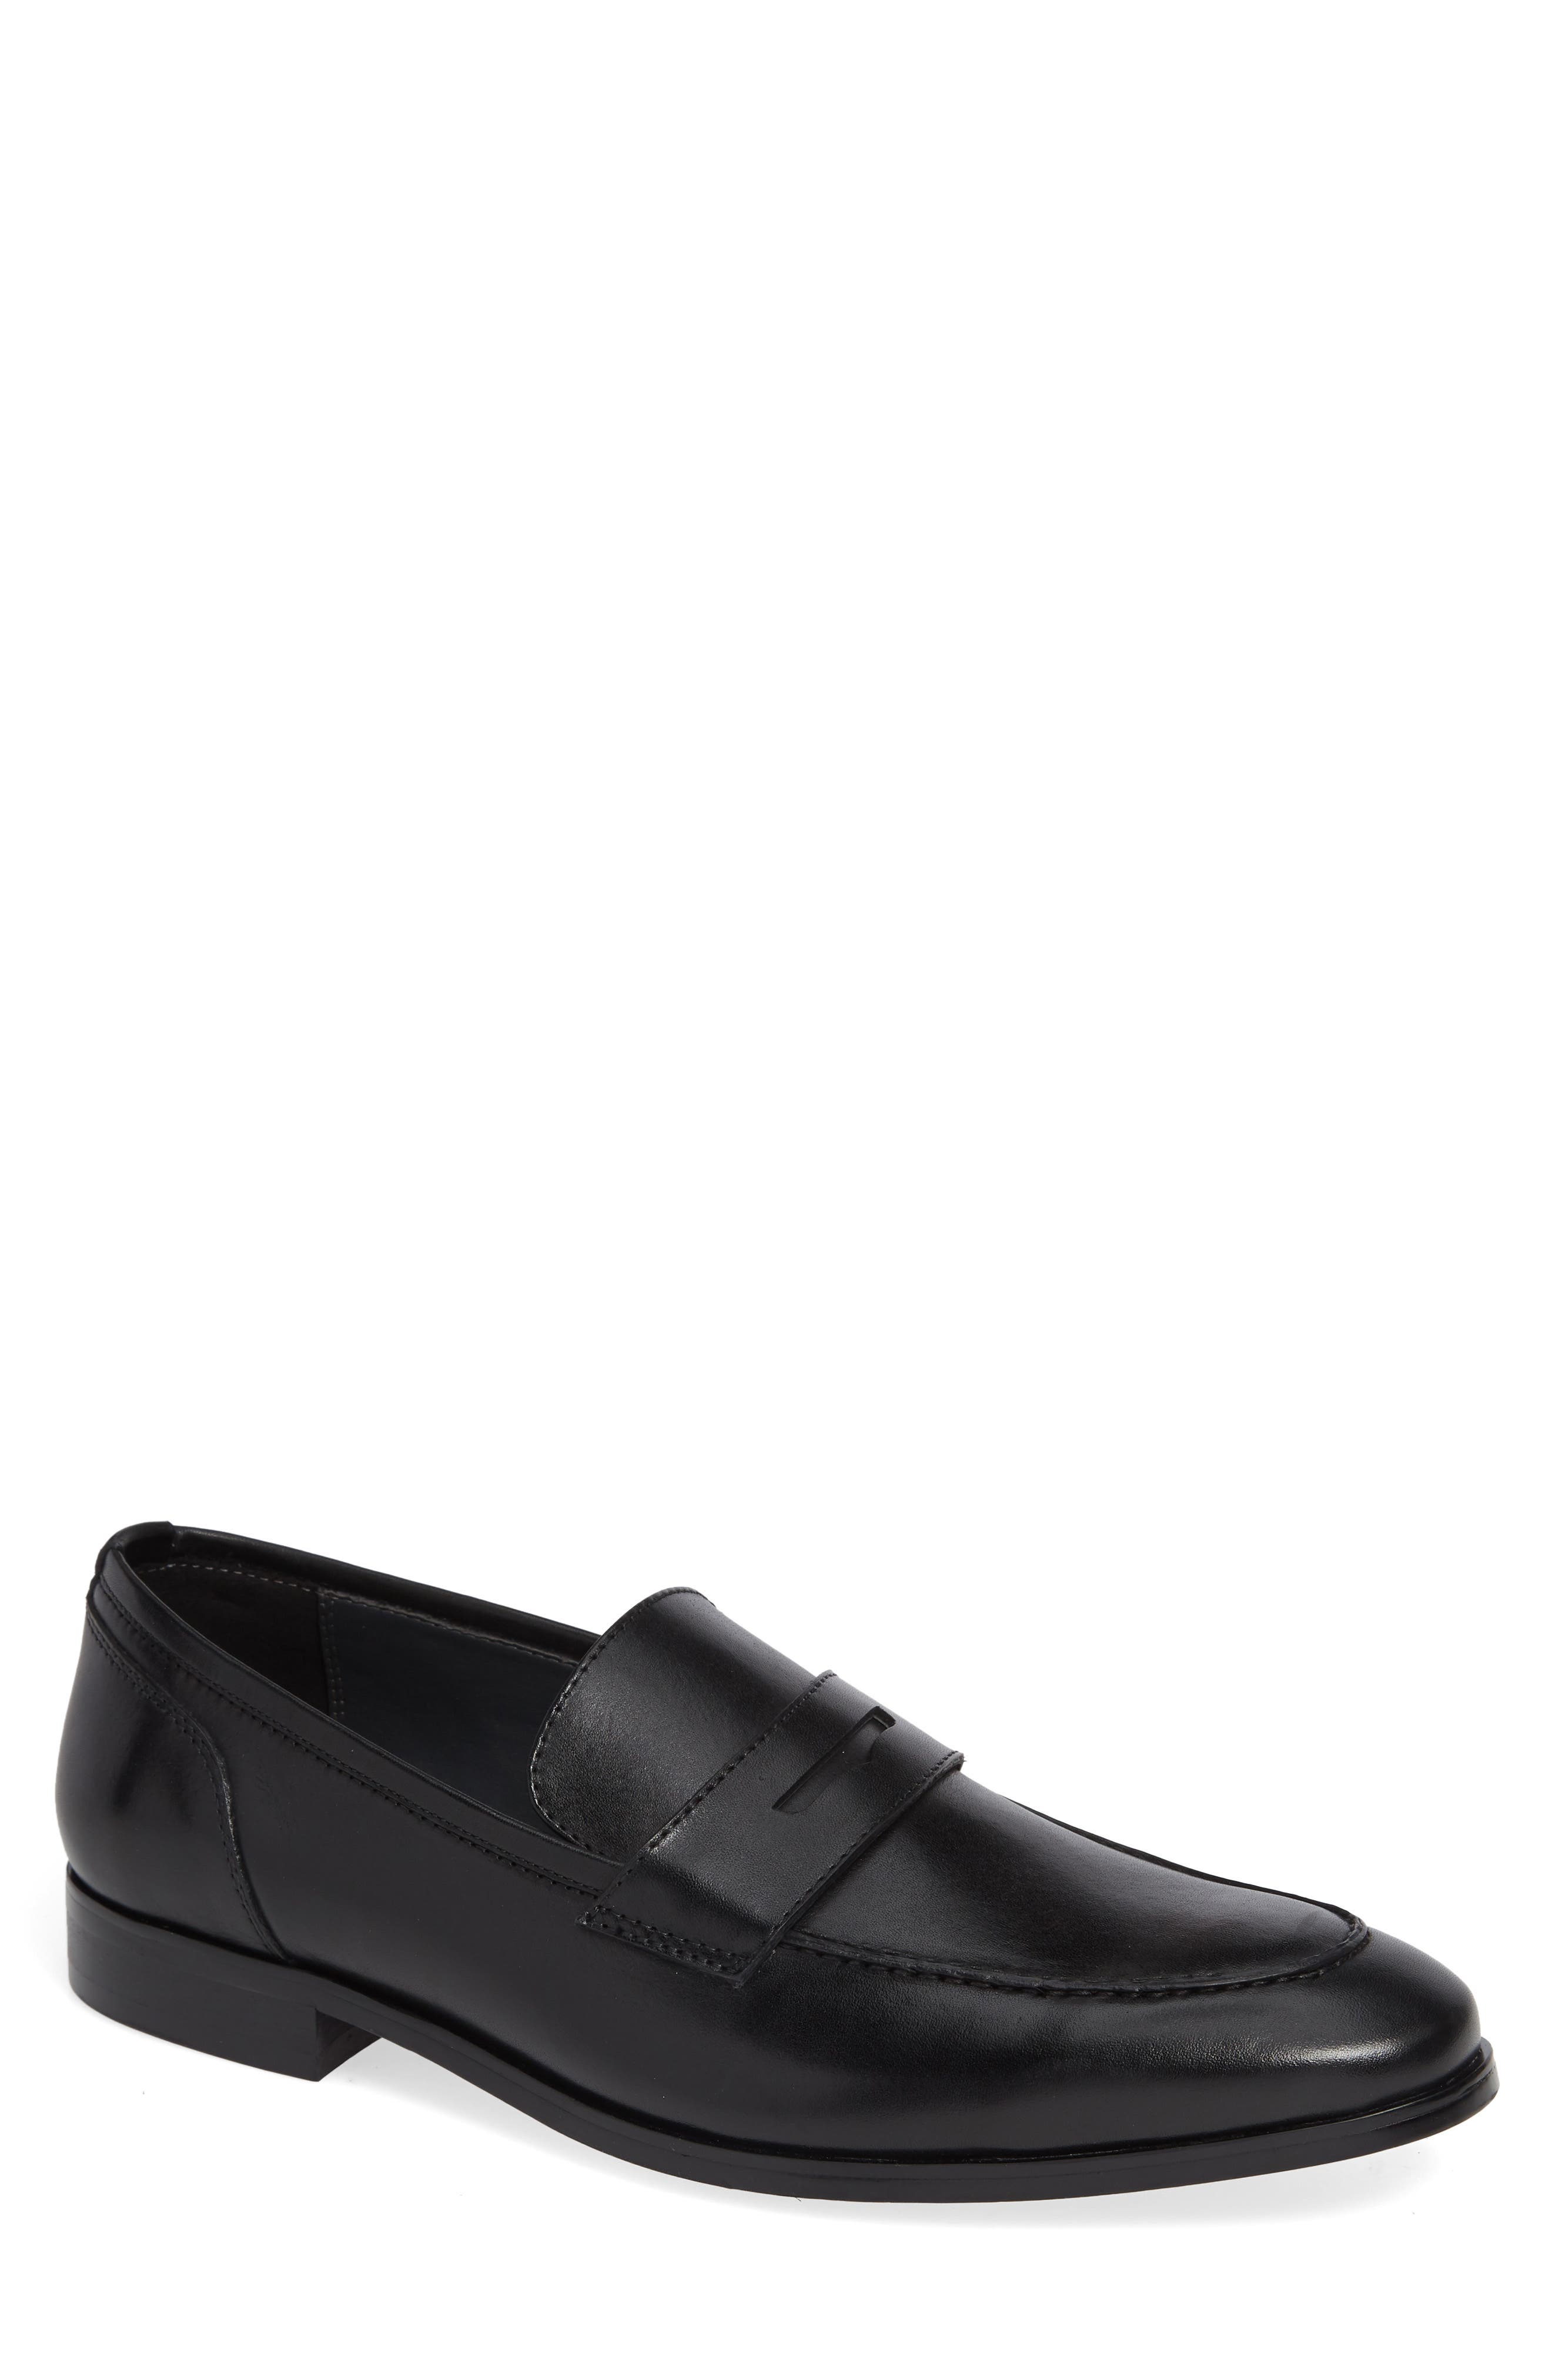 Denio Apron Toe Penny Loafer,                             Main thumbnail 1, color,                             BLACK LEATHER